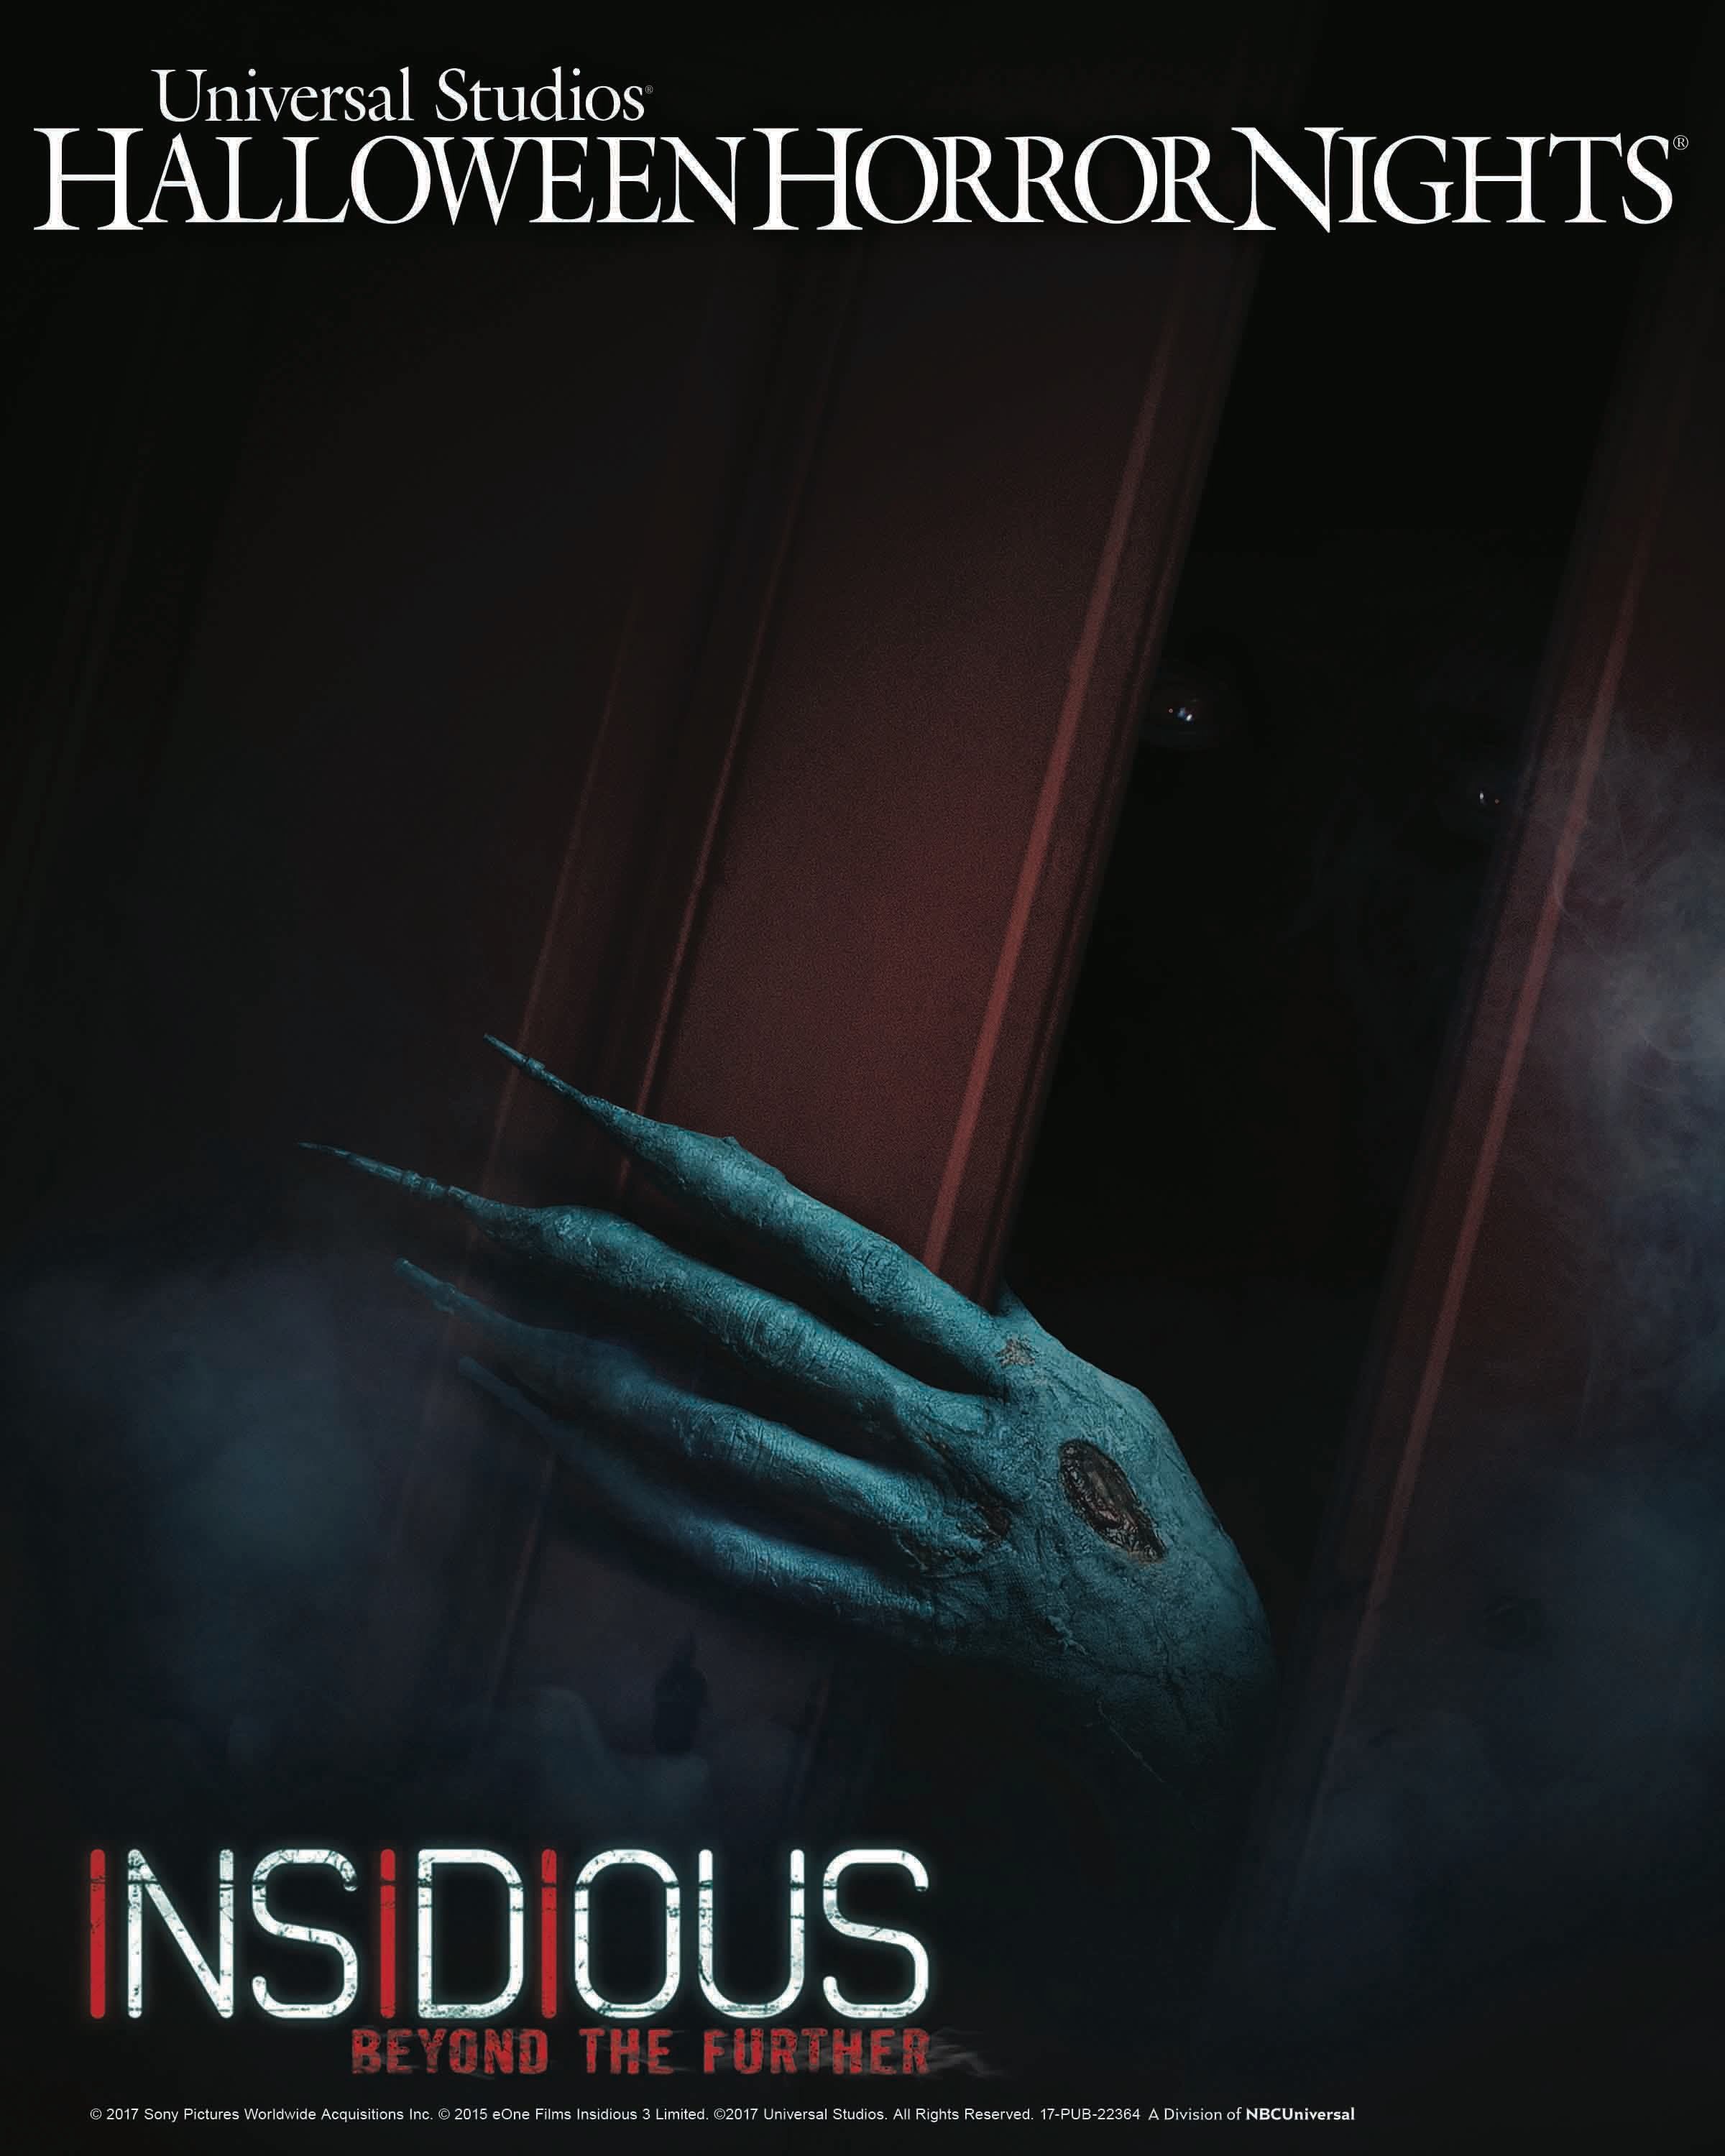 Insidious: Beyond the Further coming to Halloween Horror Nights Hollywood